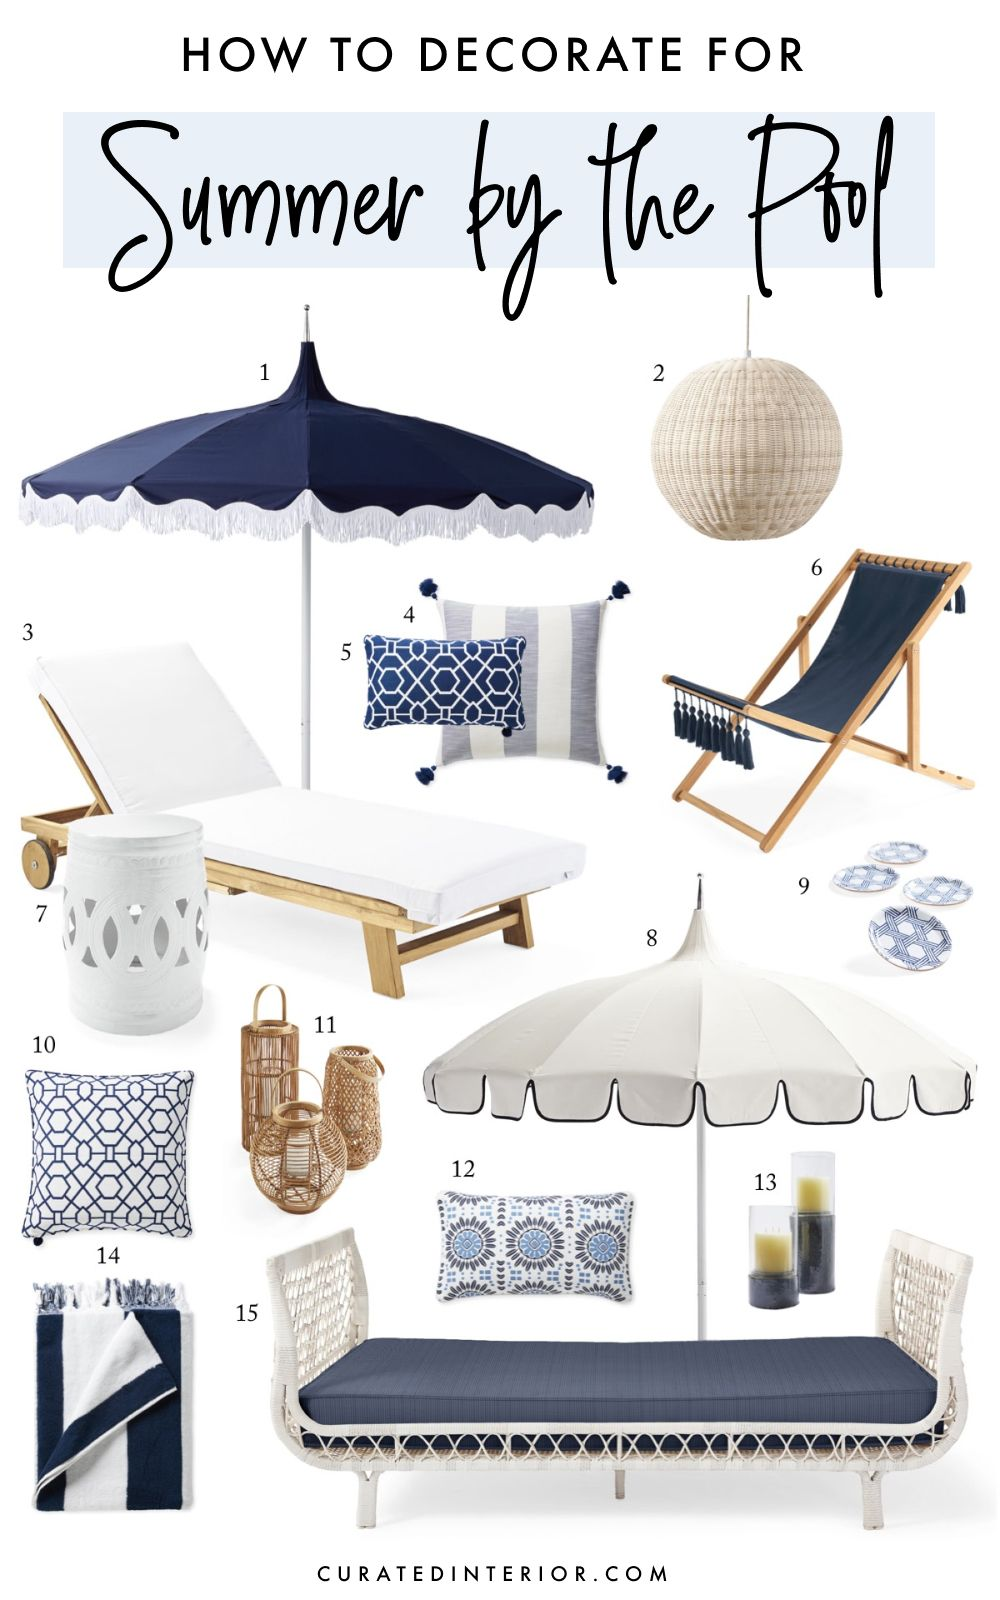 How to Decorate for Summer by the Pool